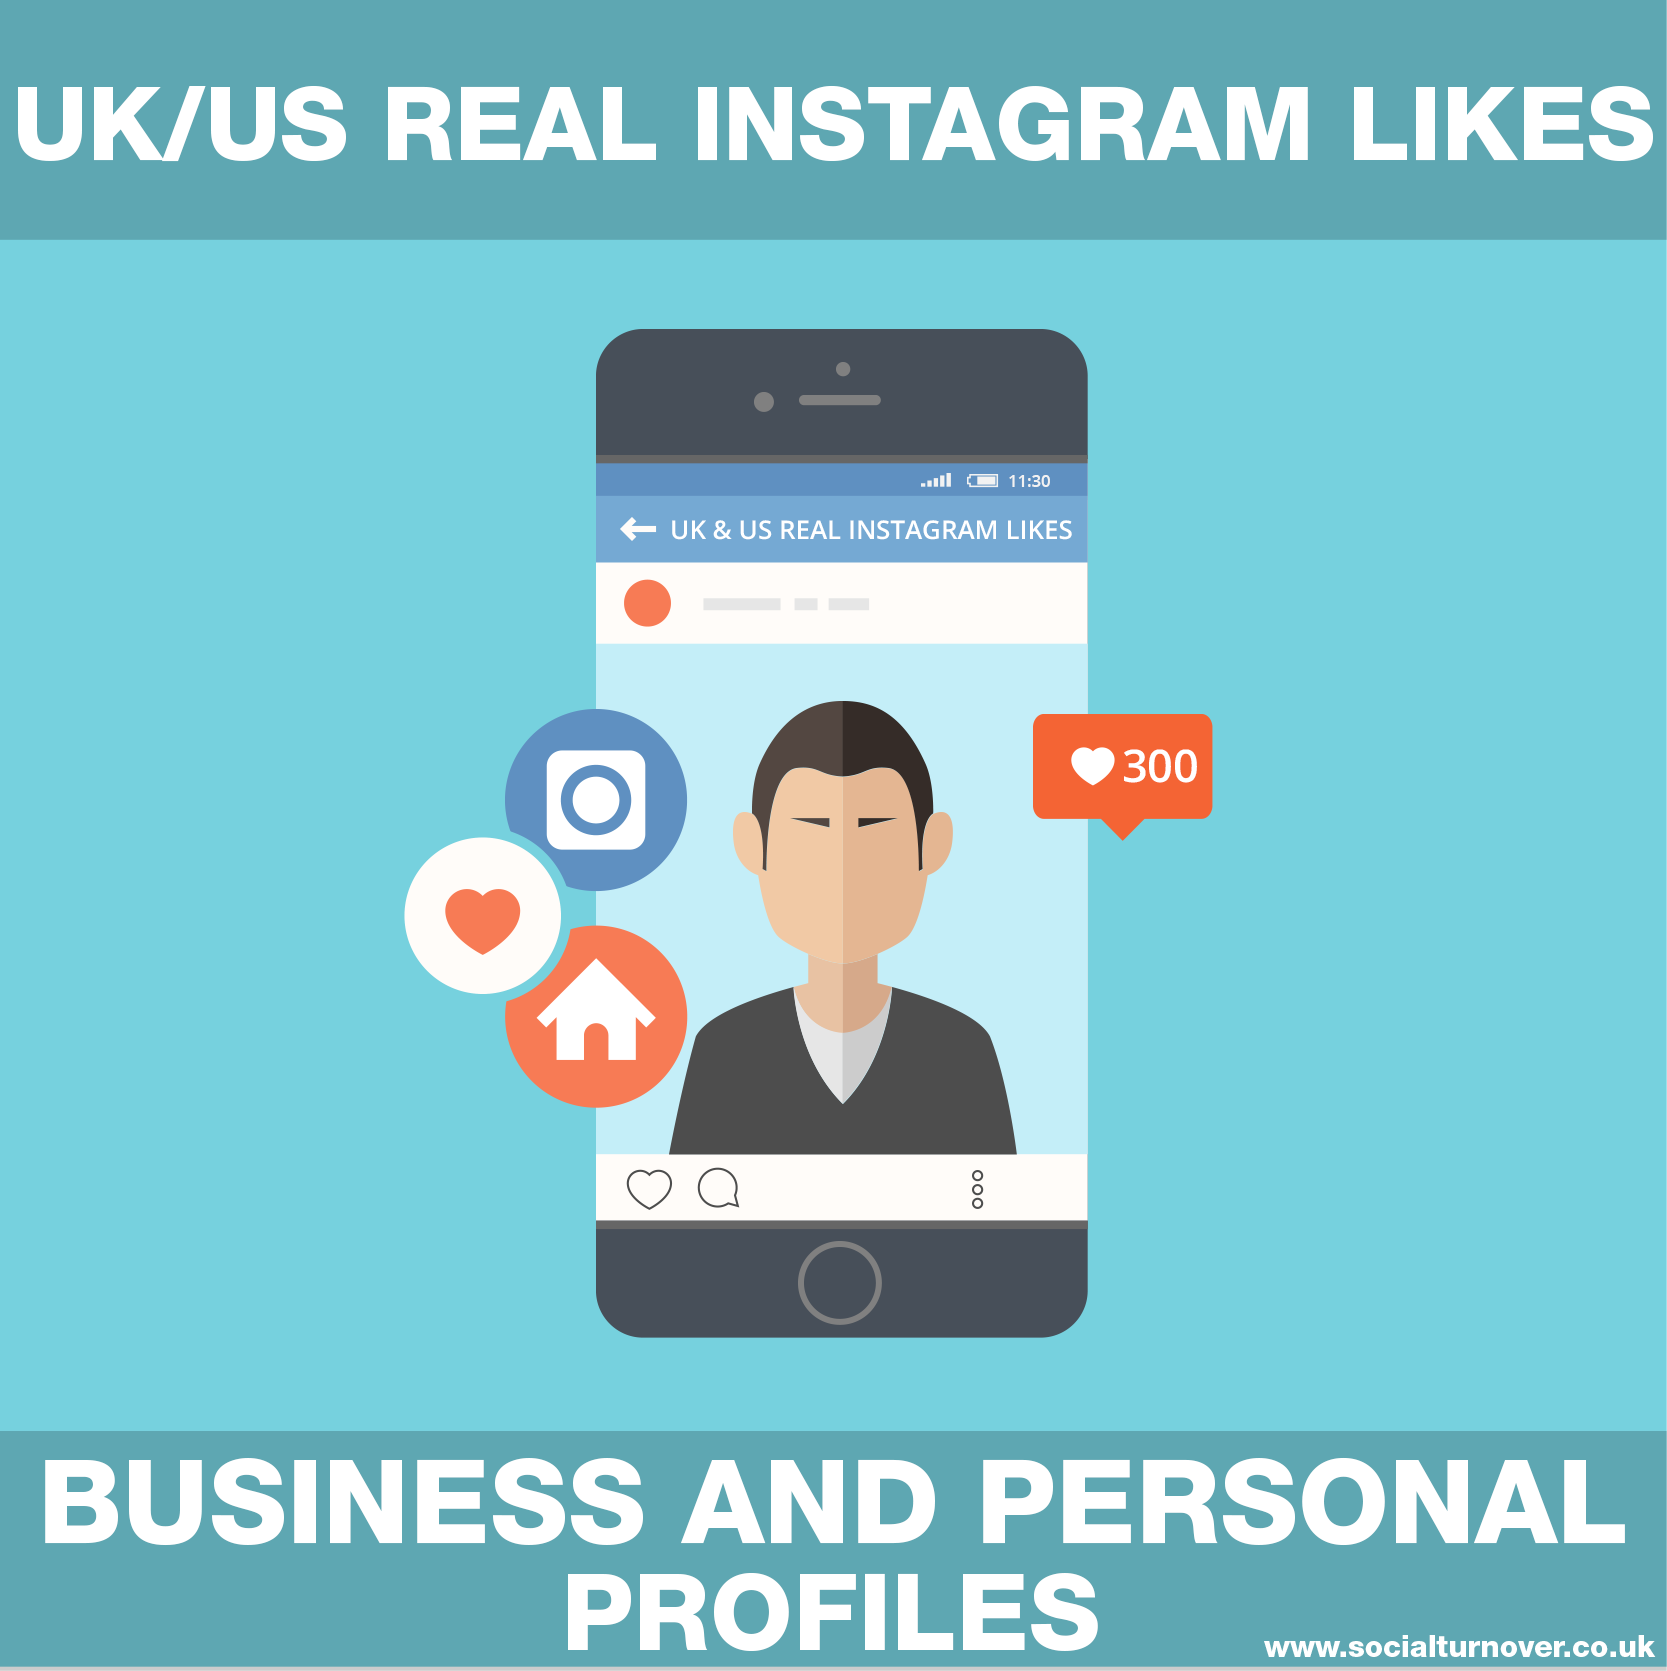 DELIVER 300 REAL UK/US BUSINESS & PERSONAL INSTAGRAM LIKES